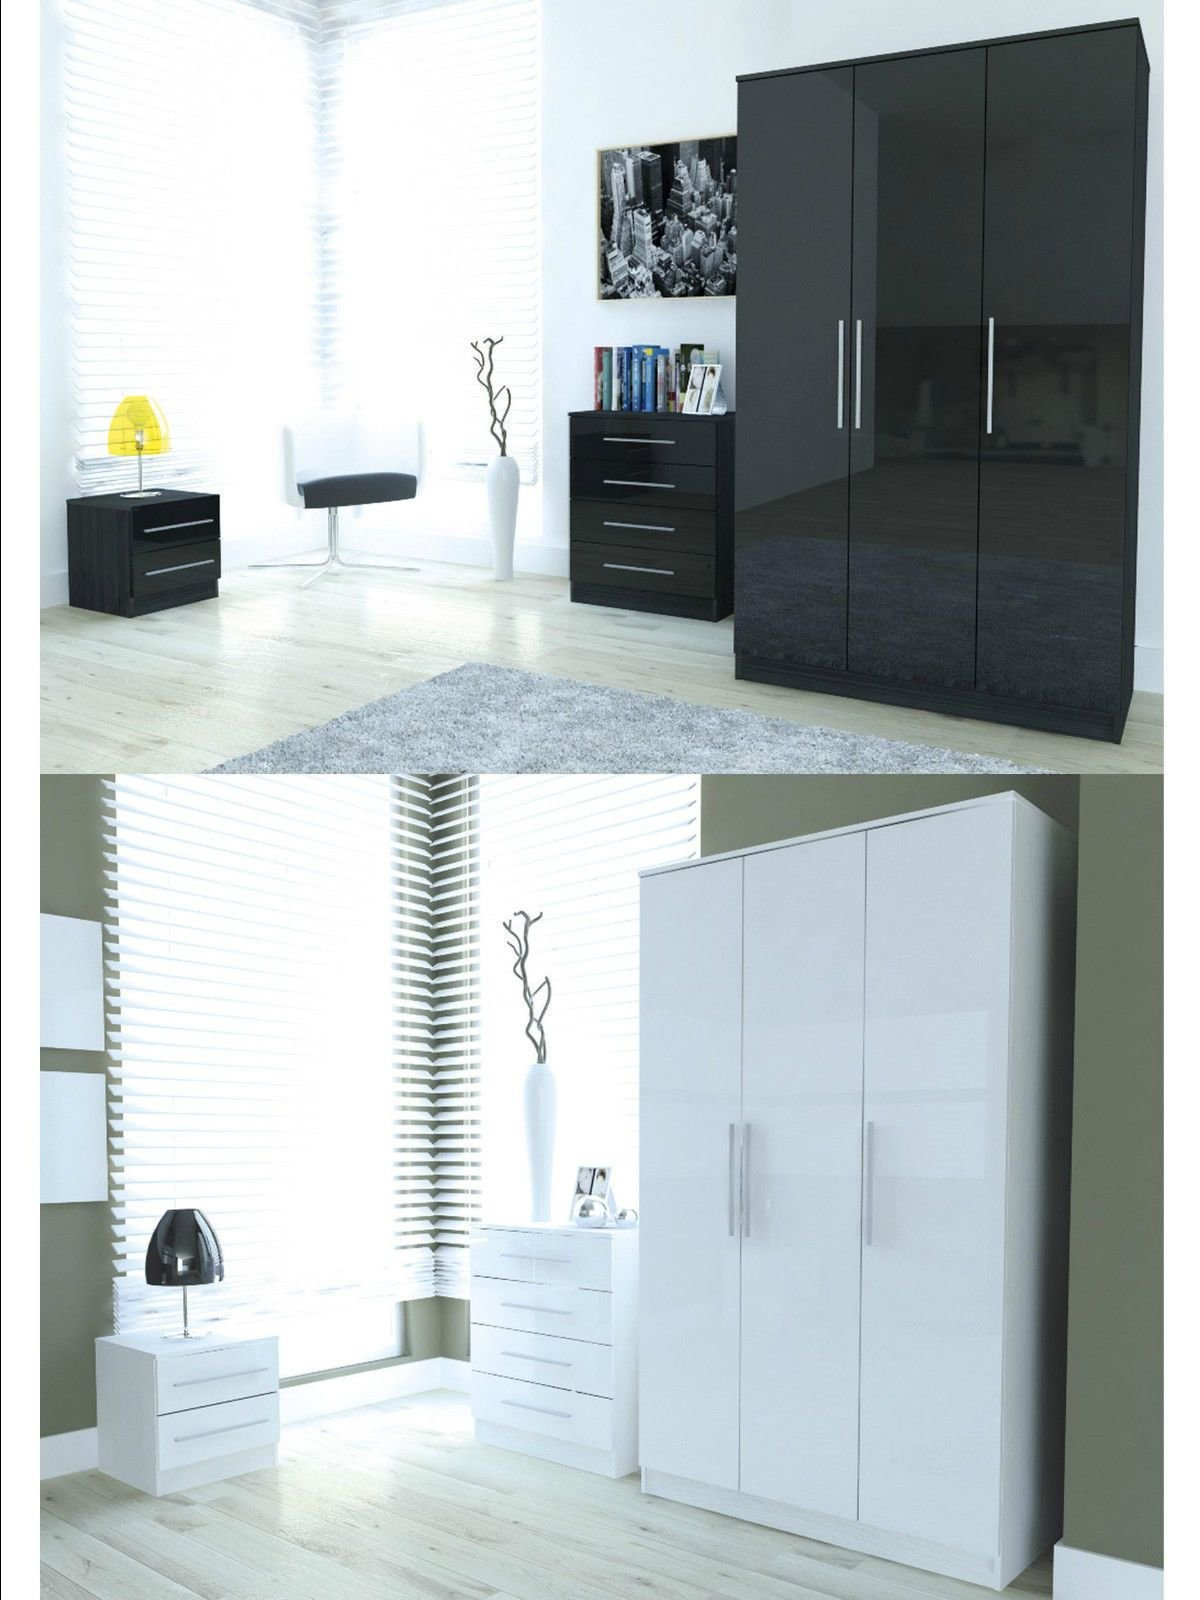 Best Toronto Caspian Black White High Gloss Bedroom Furniture Wardrobe Chest Bedside Ebay With Pictures